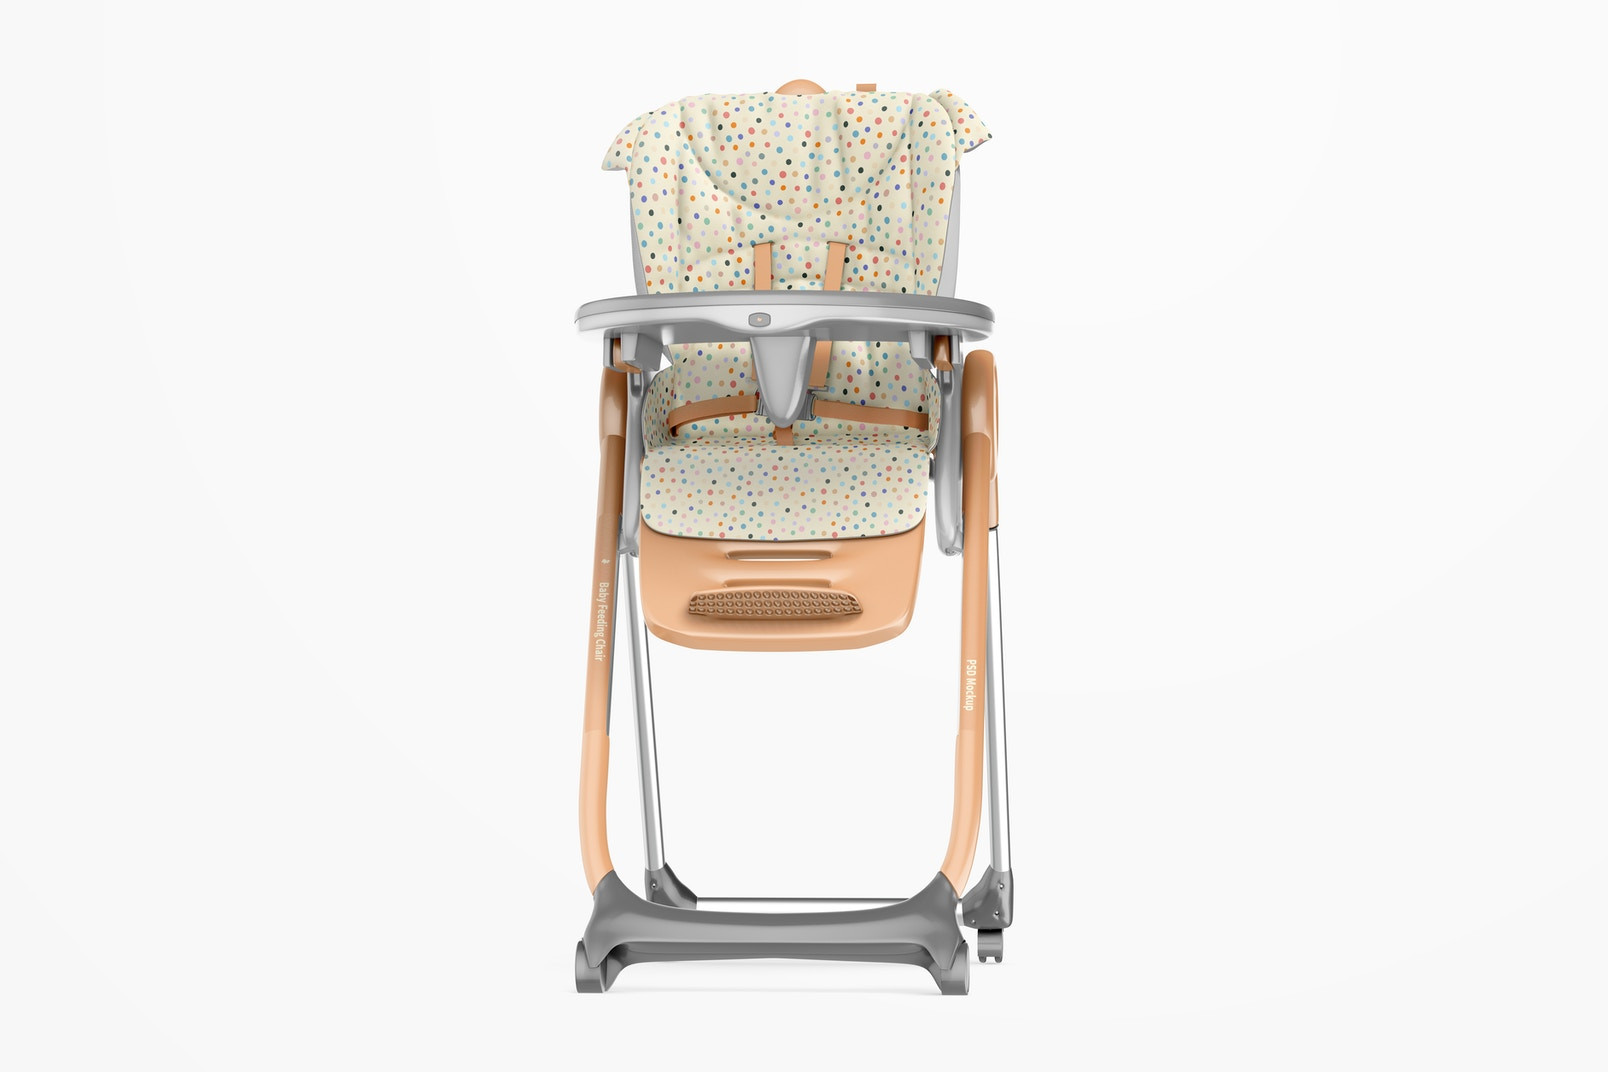 Baby Feeding Chair Mockup, Front View